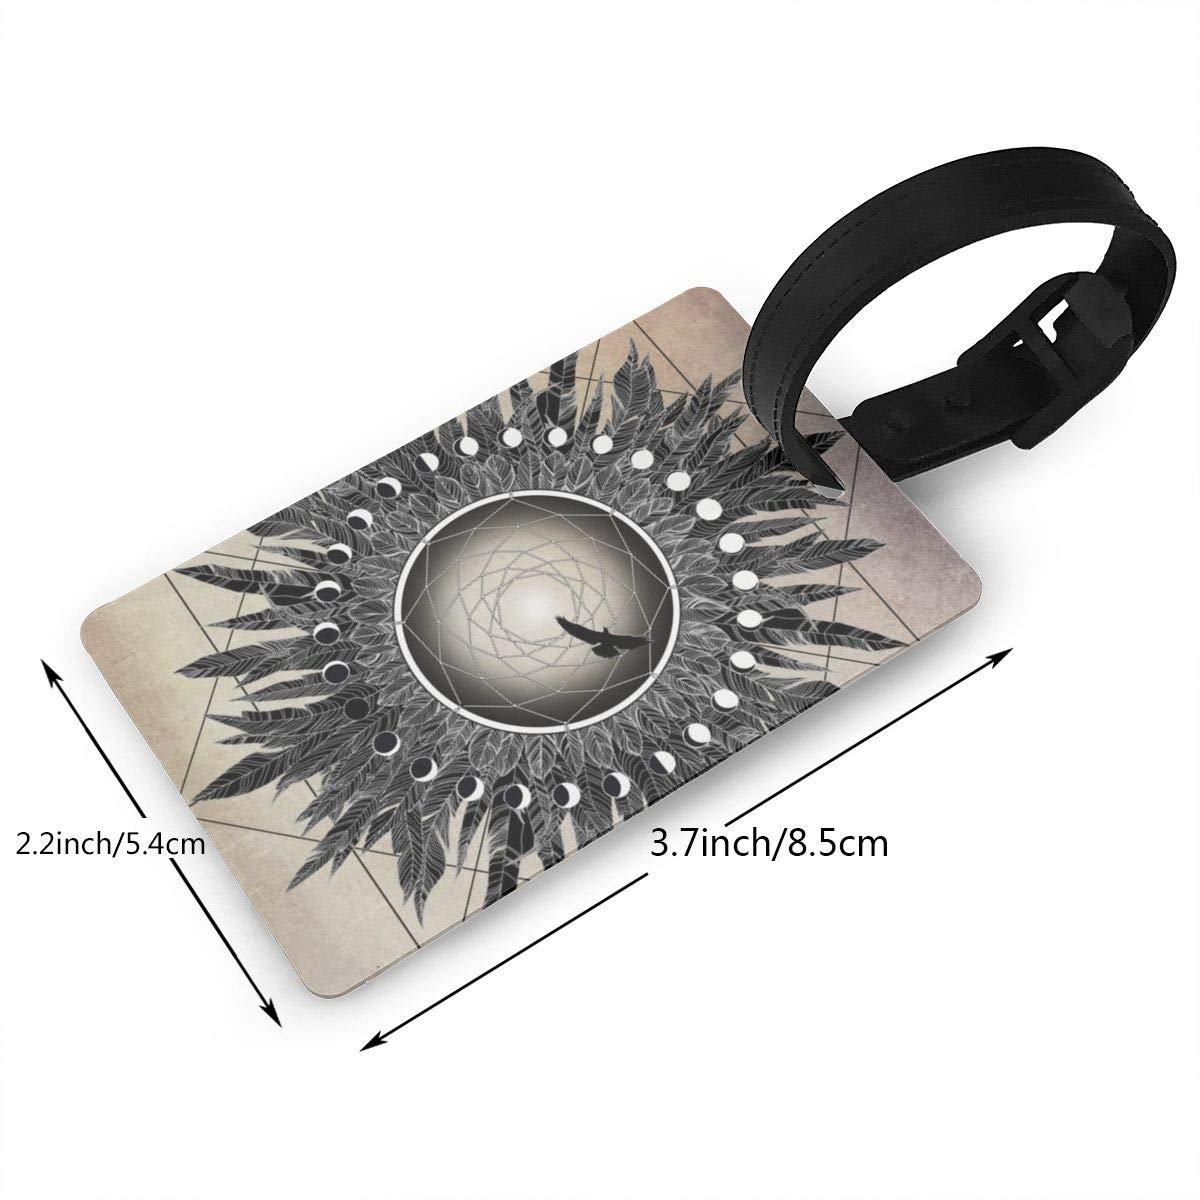 Set of 2 Crow twilight dreamcatcher Luggage Tags Suitcase Labels Bag Travel Accessories